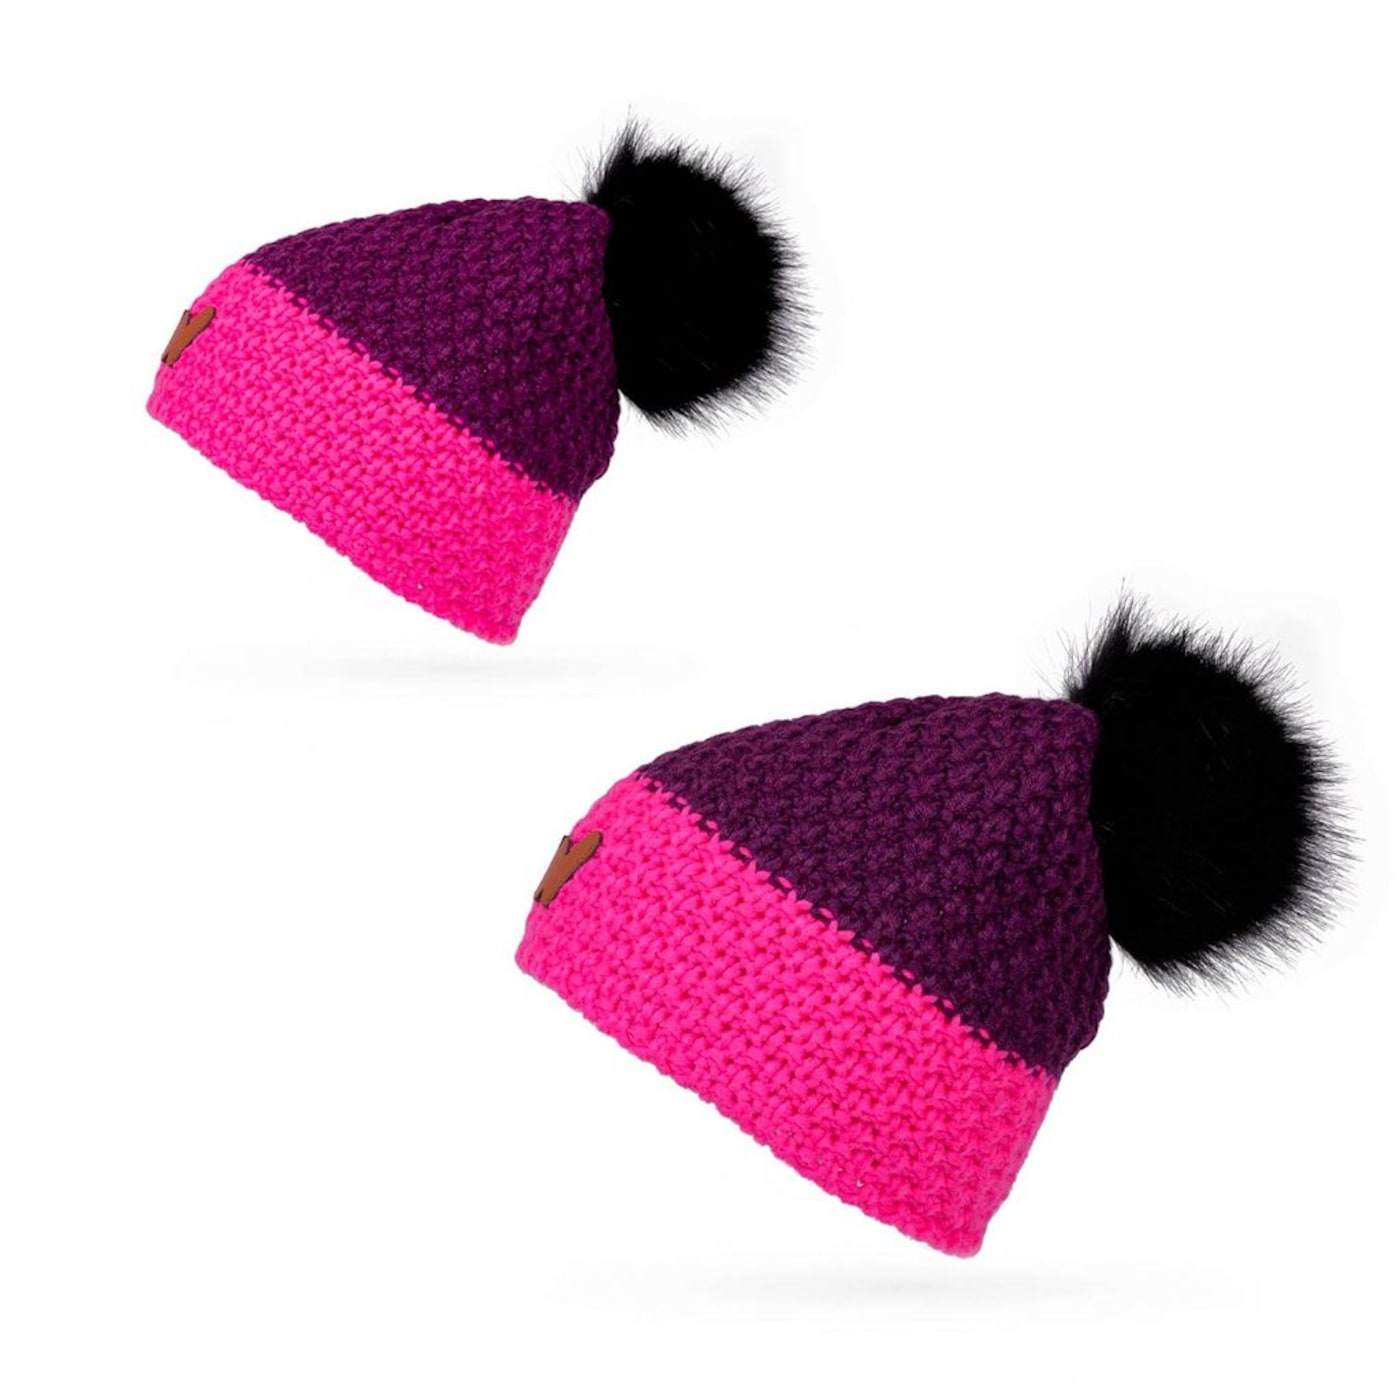 Pair of hats for mom and daughter Vuch Mummy set Violet